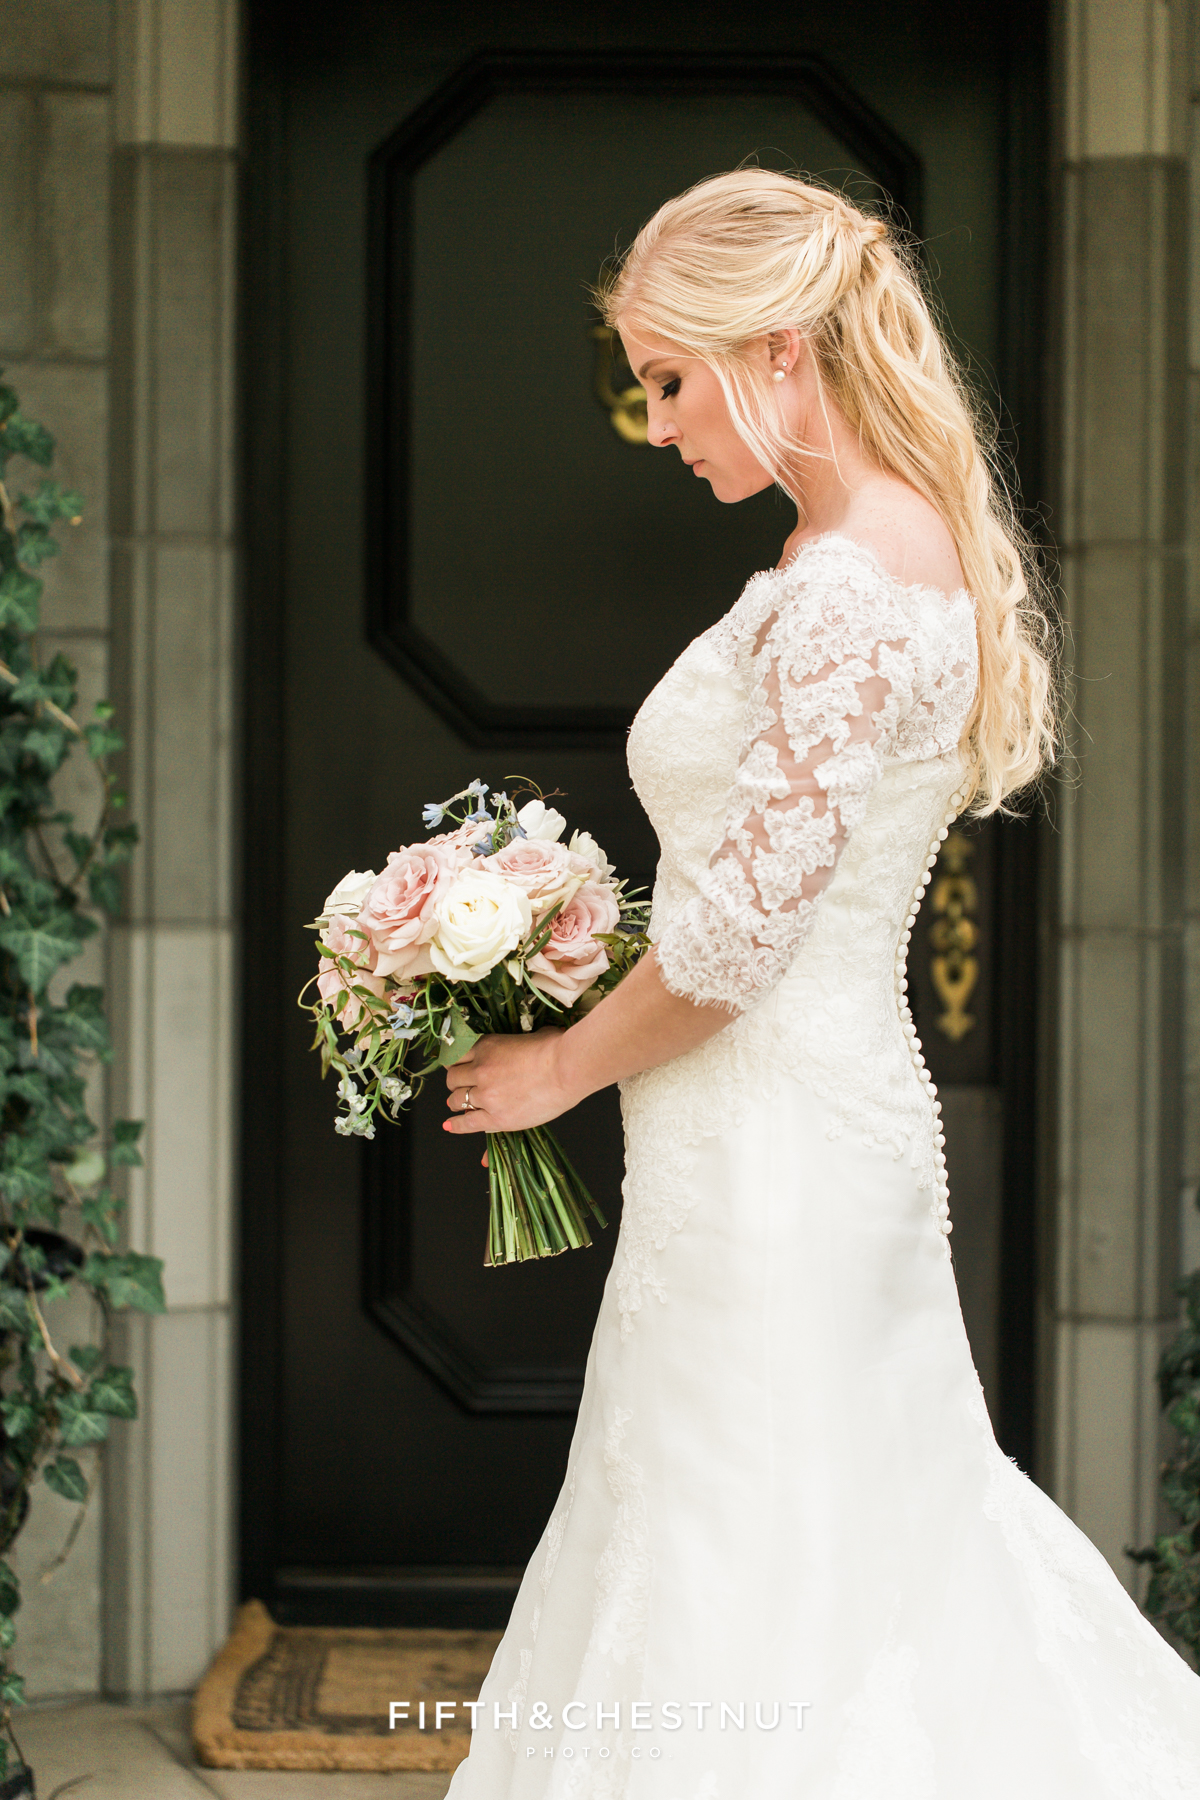 Bride standing in front of a black door at a private estate for a Country French Wedding Styled Shoot in Reno